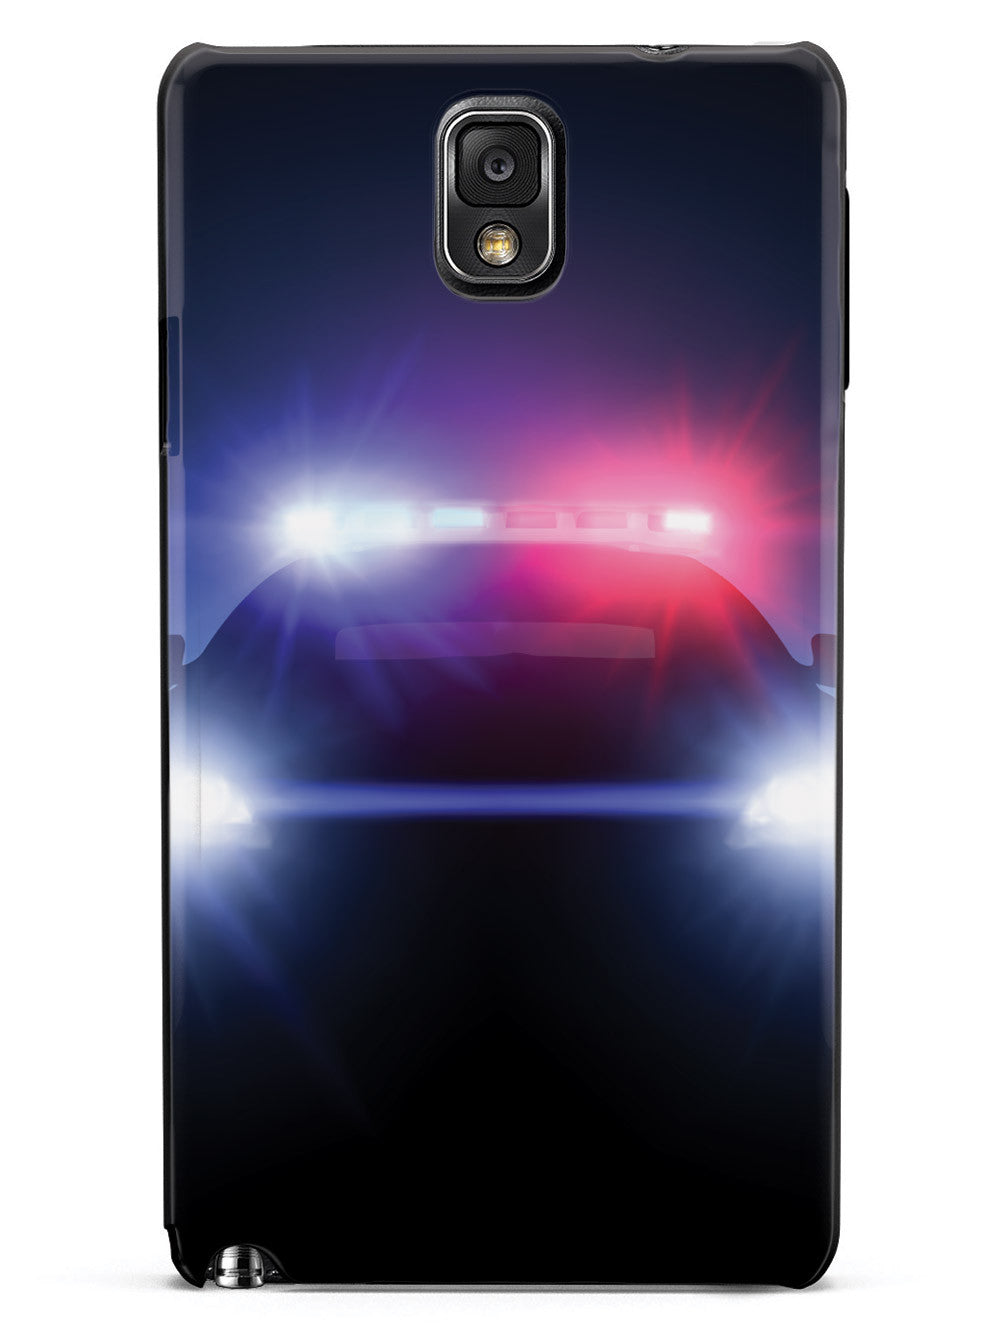 Stealth Police Car - Flashing Blue & Red Lights Case